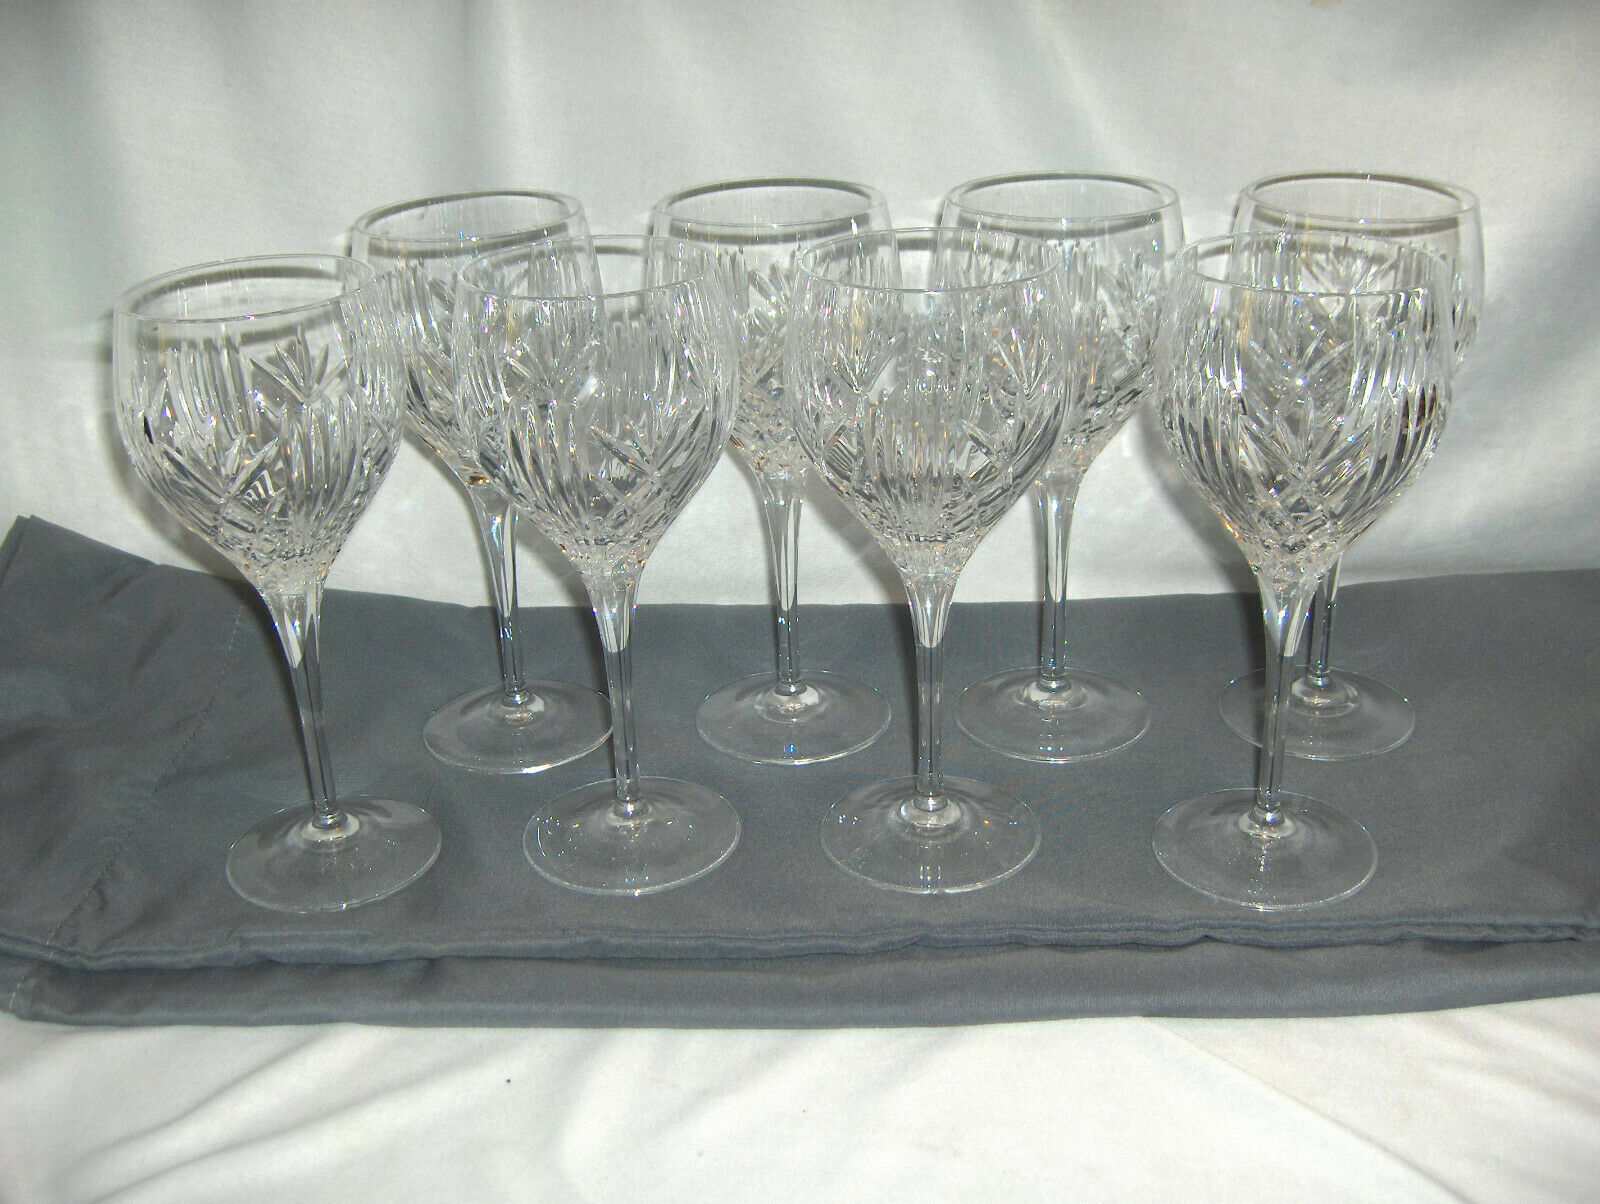 8 Vintage Royal Doulton Fine Crystal Summit Water Goblet Criss Cross Spears NICE - $193.05